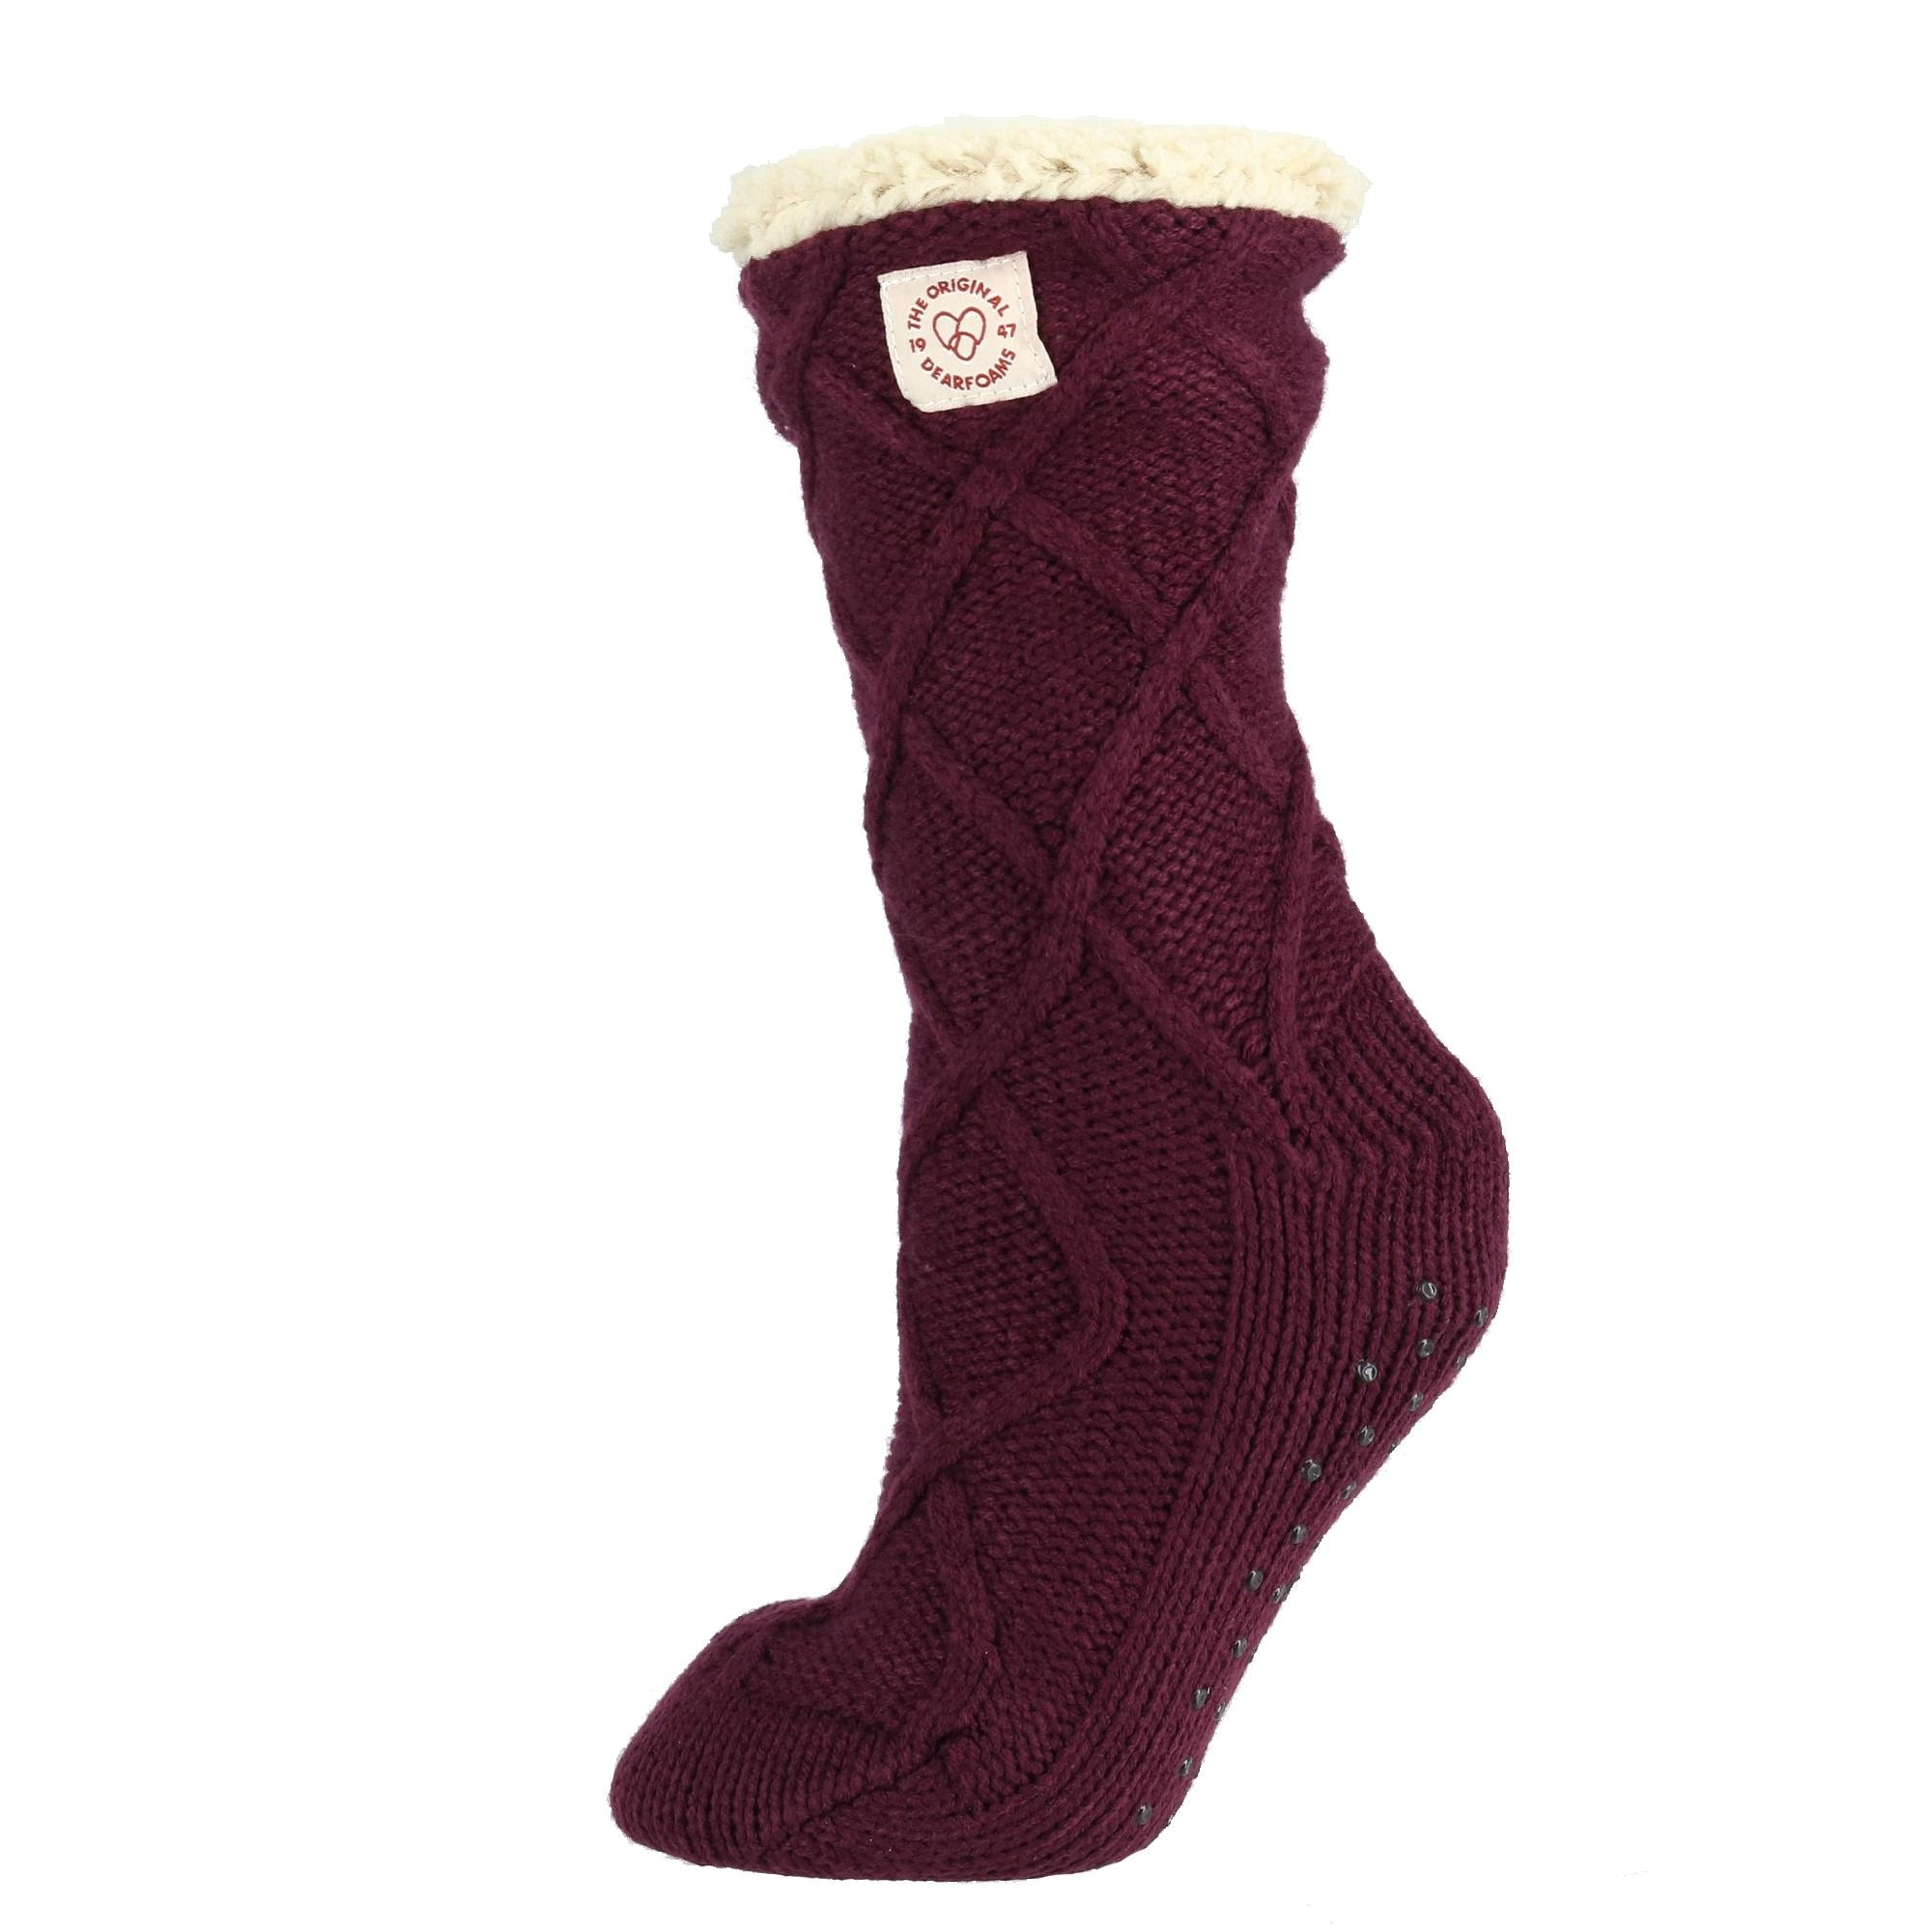 Shop Dearfoams Womens Lattice Cable Knit Slipper Socks Free